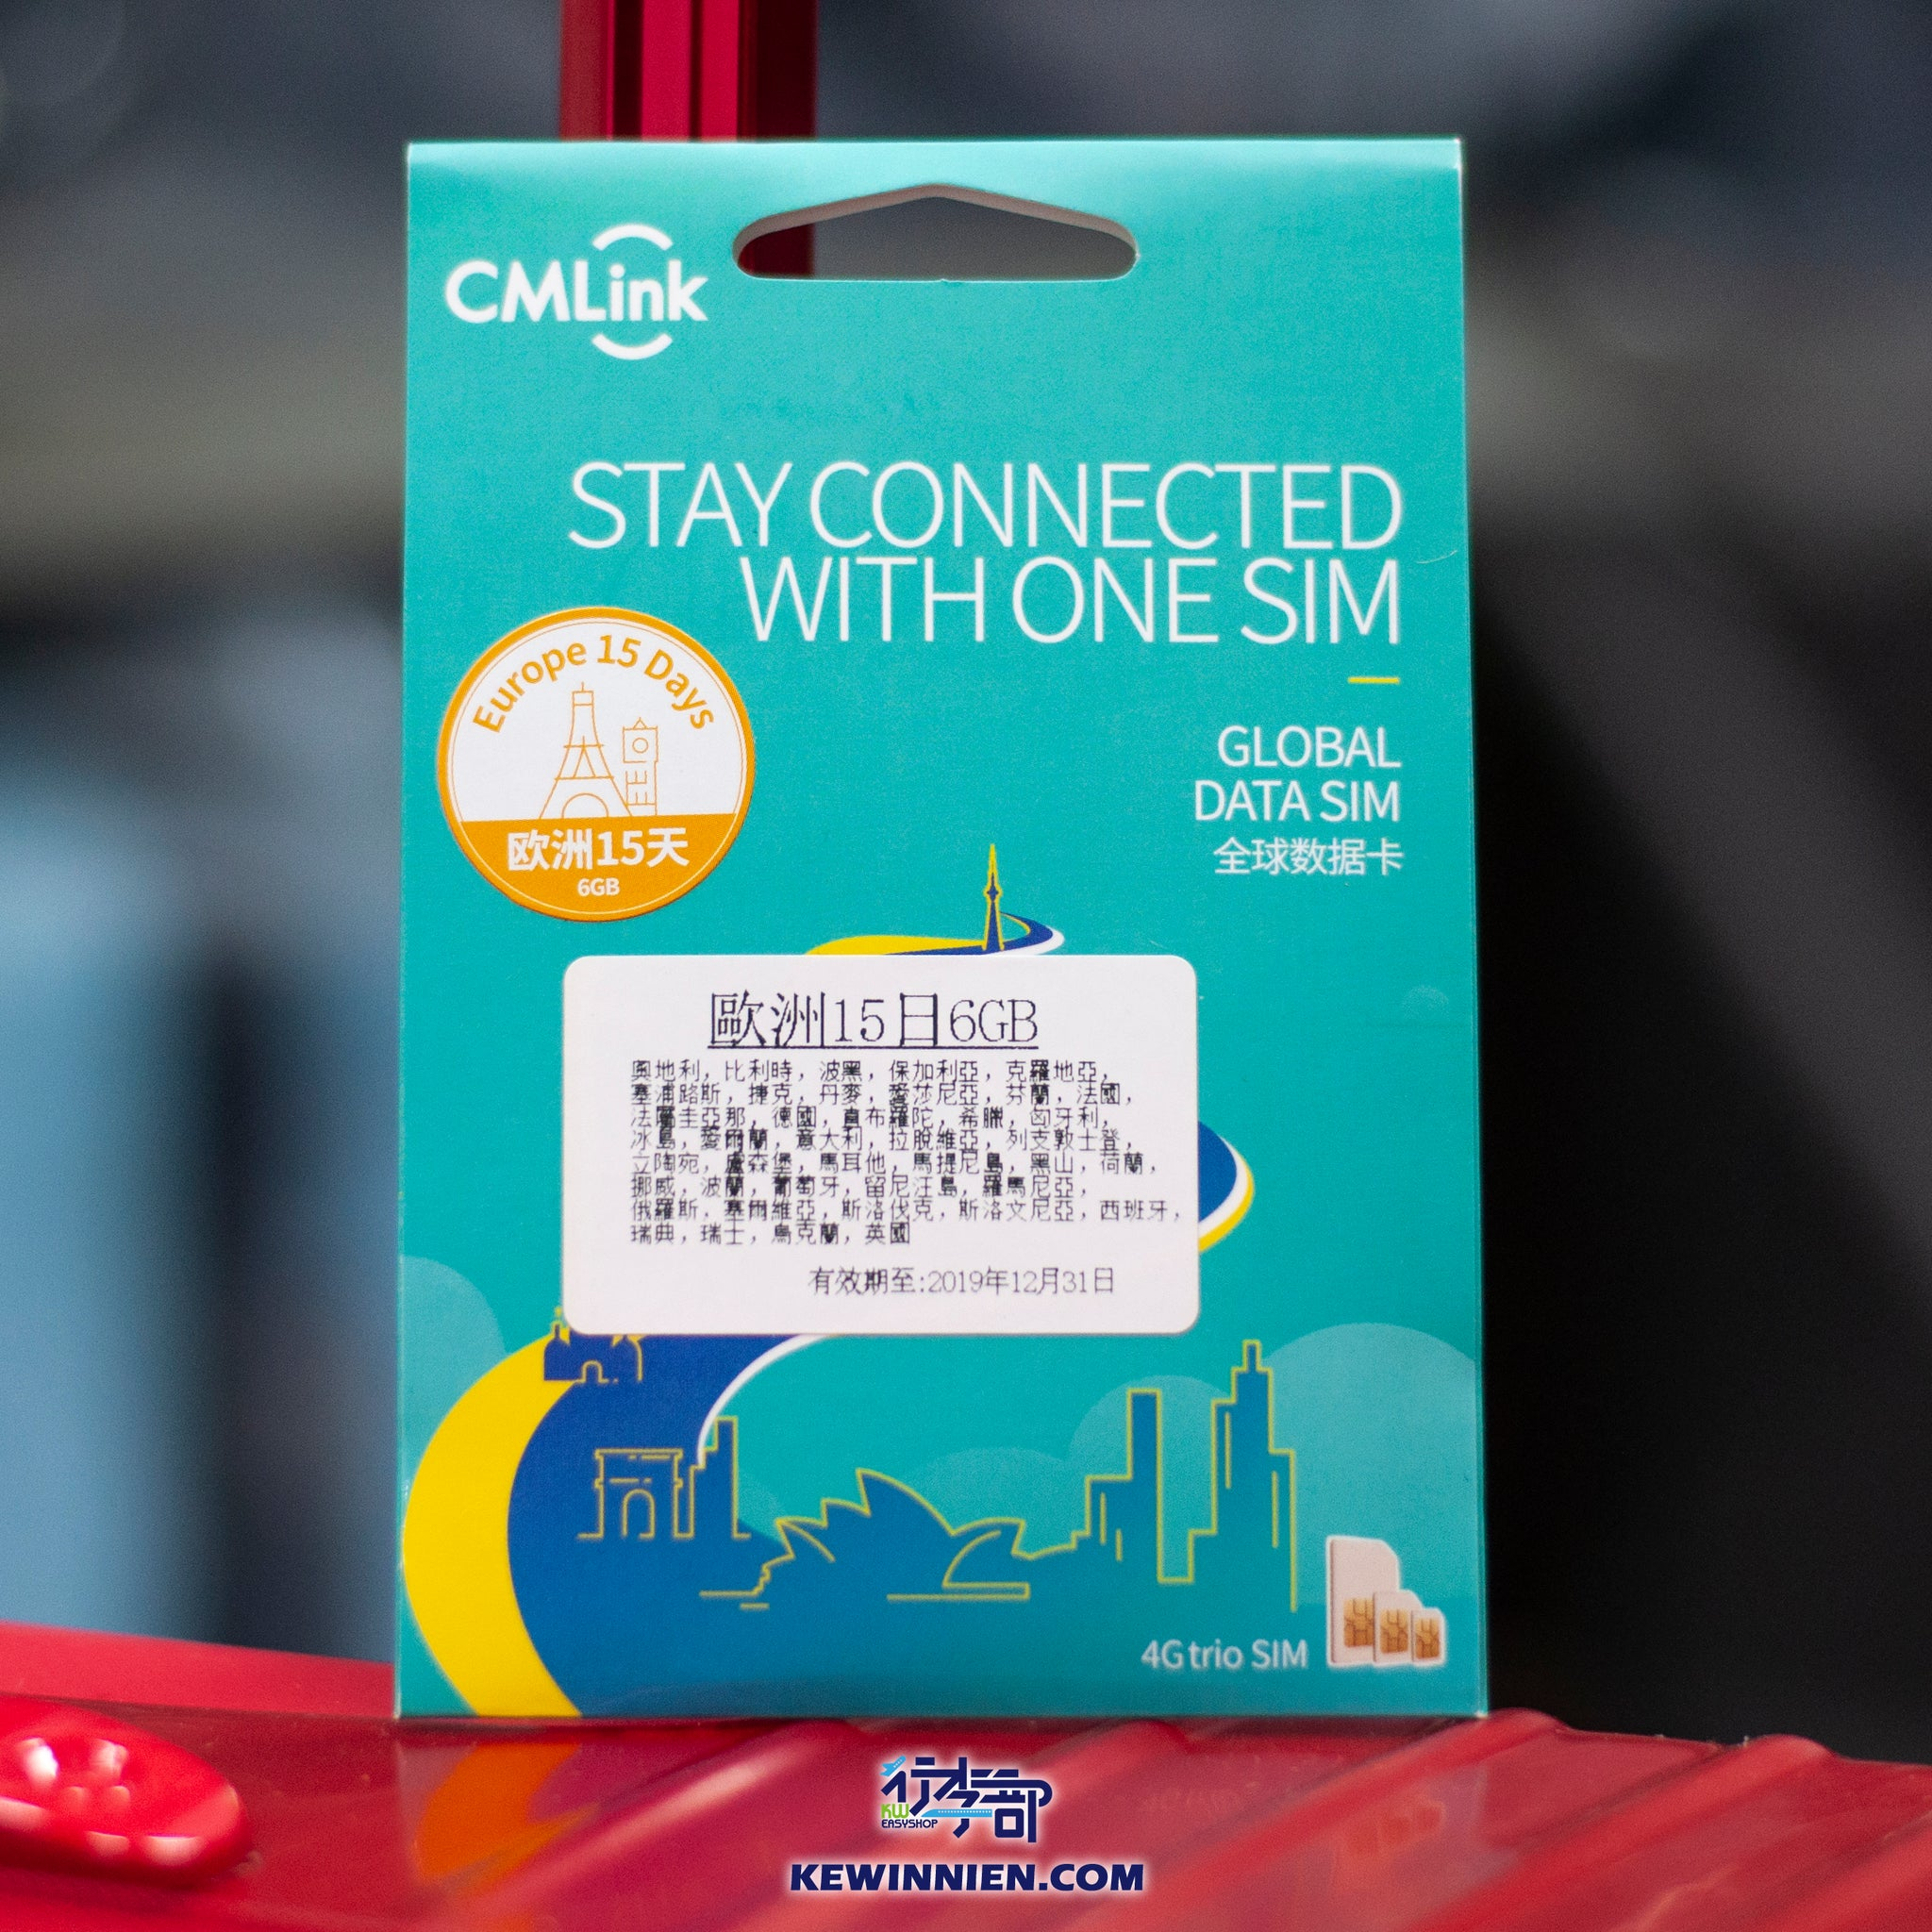 (歐洲 ) CMLink 歐洲 15日 (35國家)4G LTE $G Trio SIM GLOBAL DATA Europe 15 days